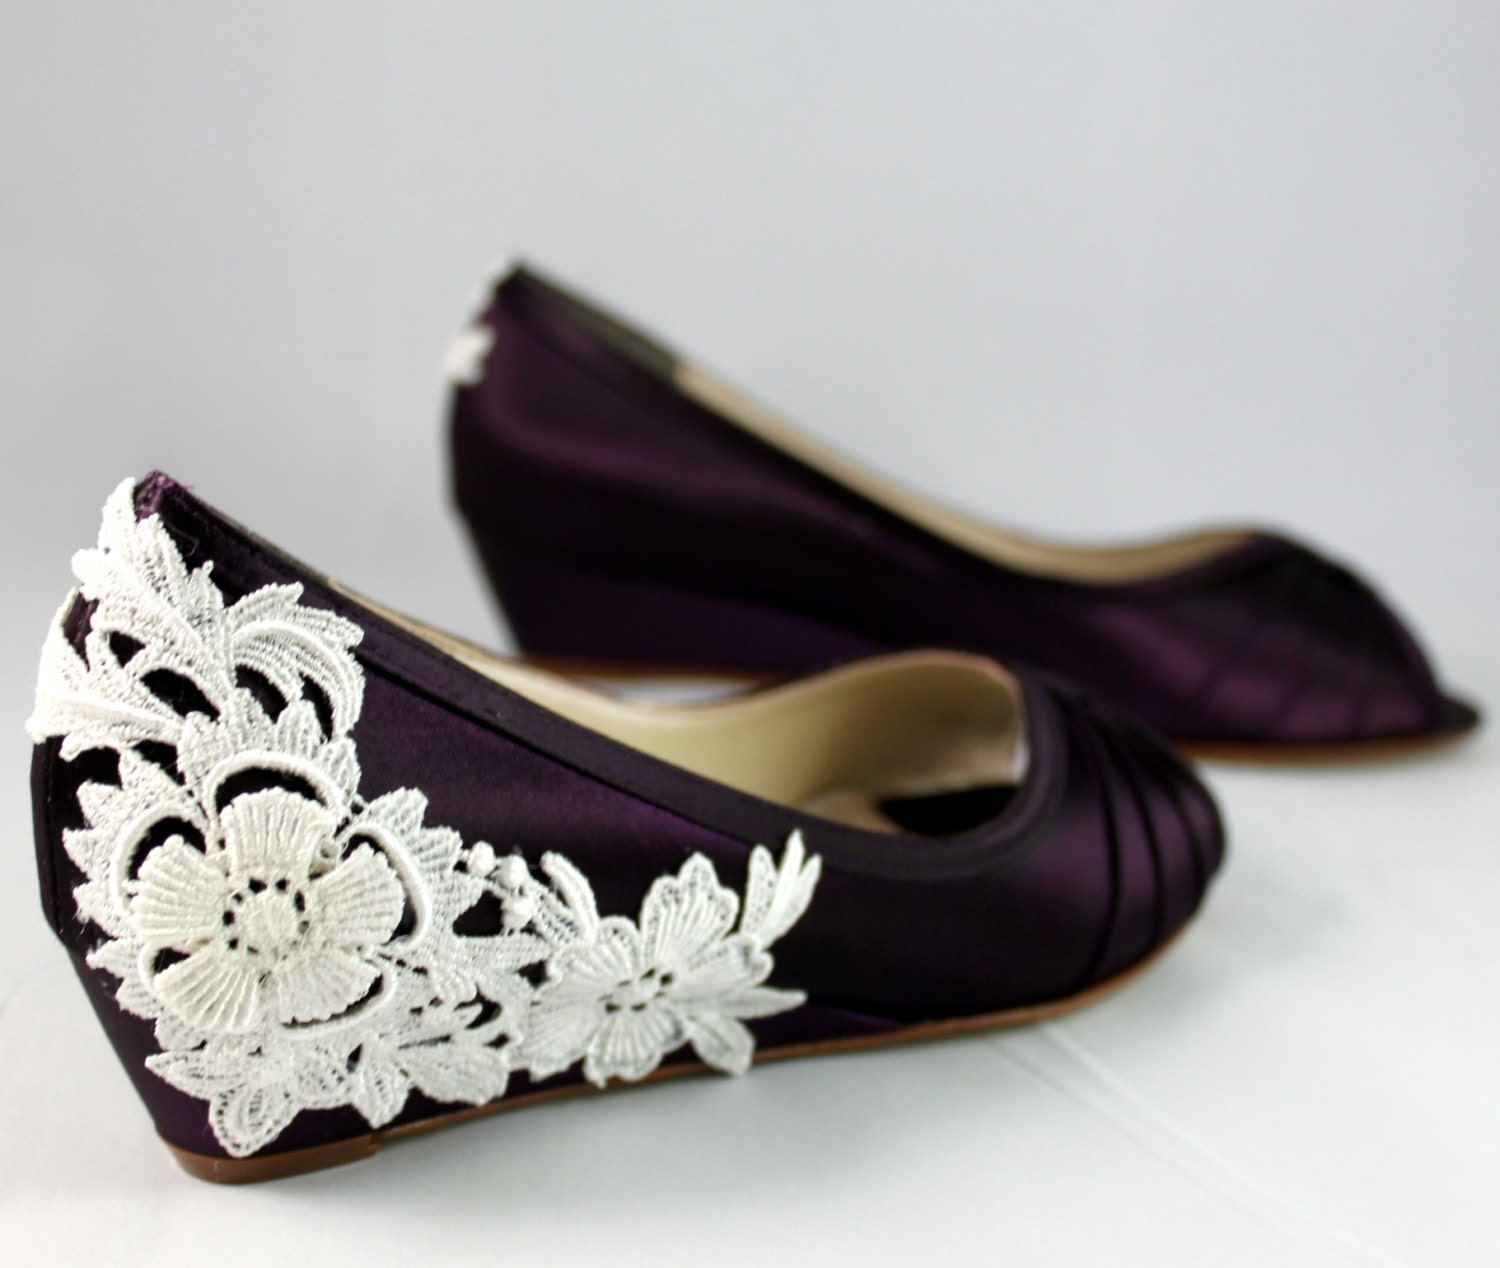 Purple Wedding Shoes Wedge Low Heel    1 Inch Wedge Shoes Ivory Lace Heel   Size 6.5